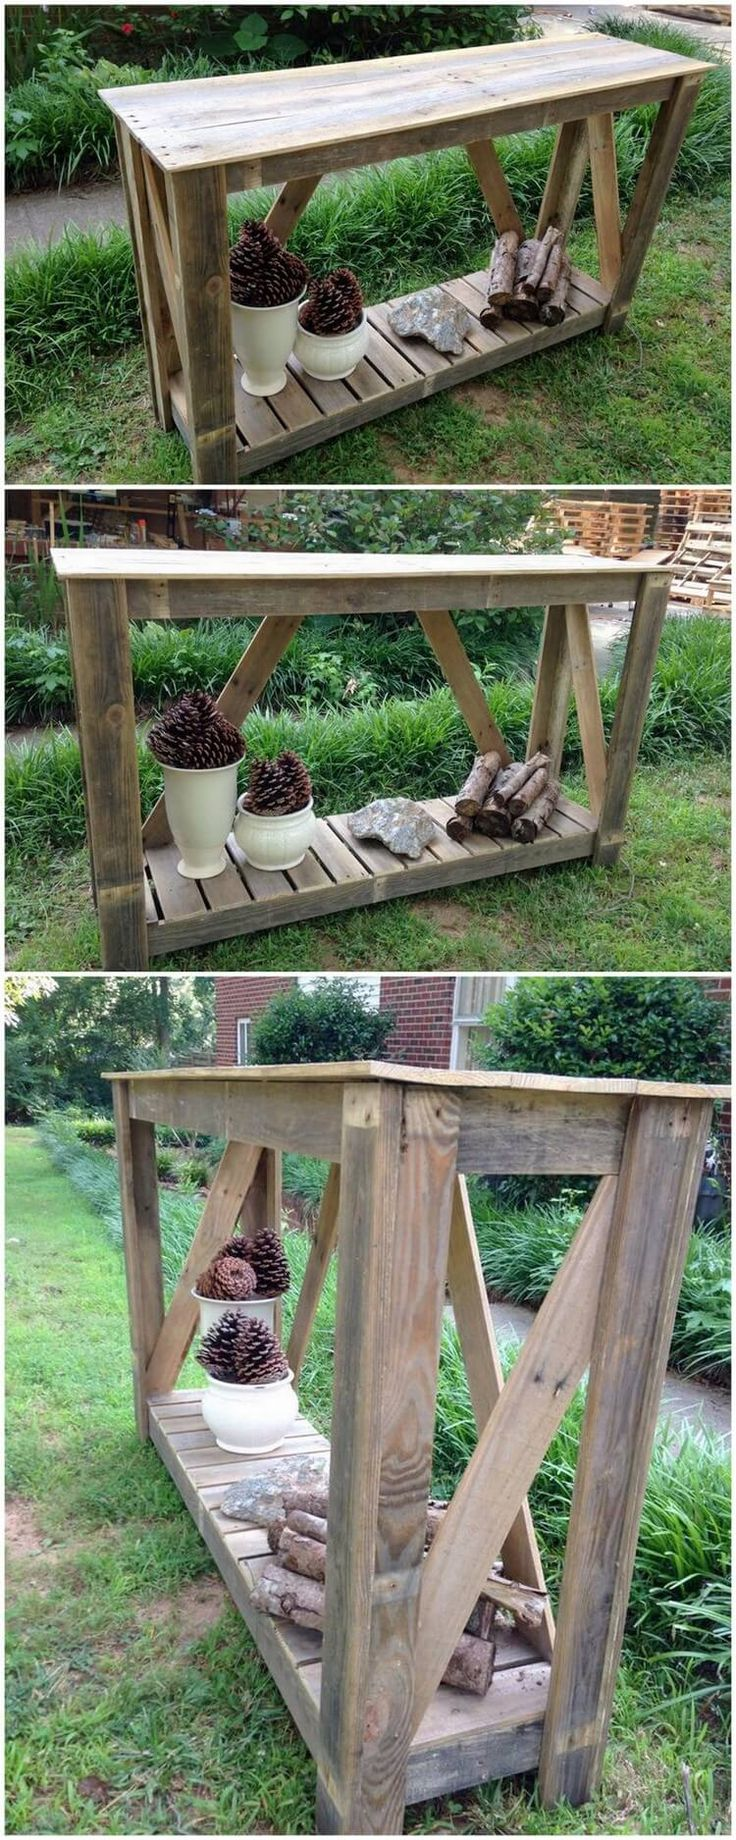 Wooden transport pallets have become increasingly popular for diy - 50 Creative Diy Wood Pallet Ideas For This Summer